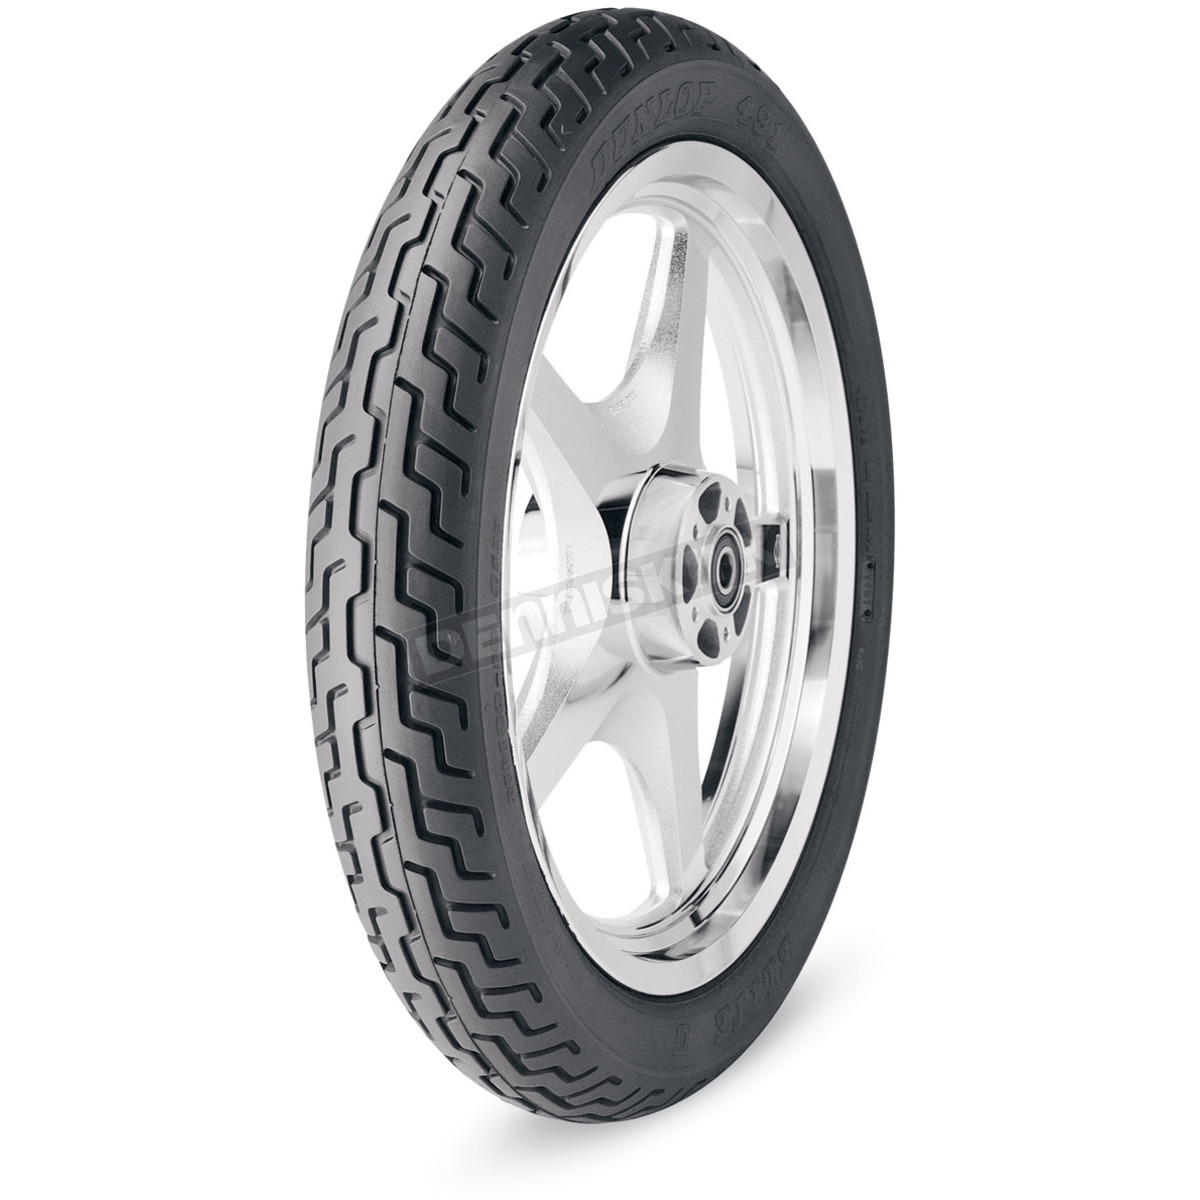 dunlop elite 4 motorcycle tires review